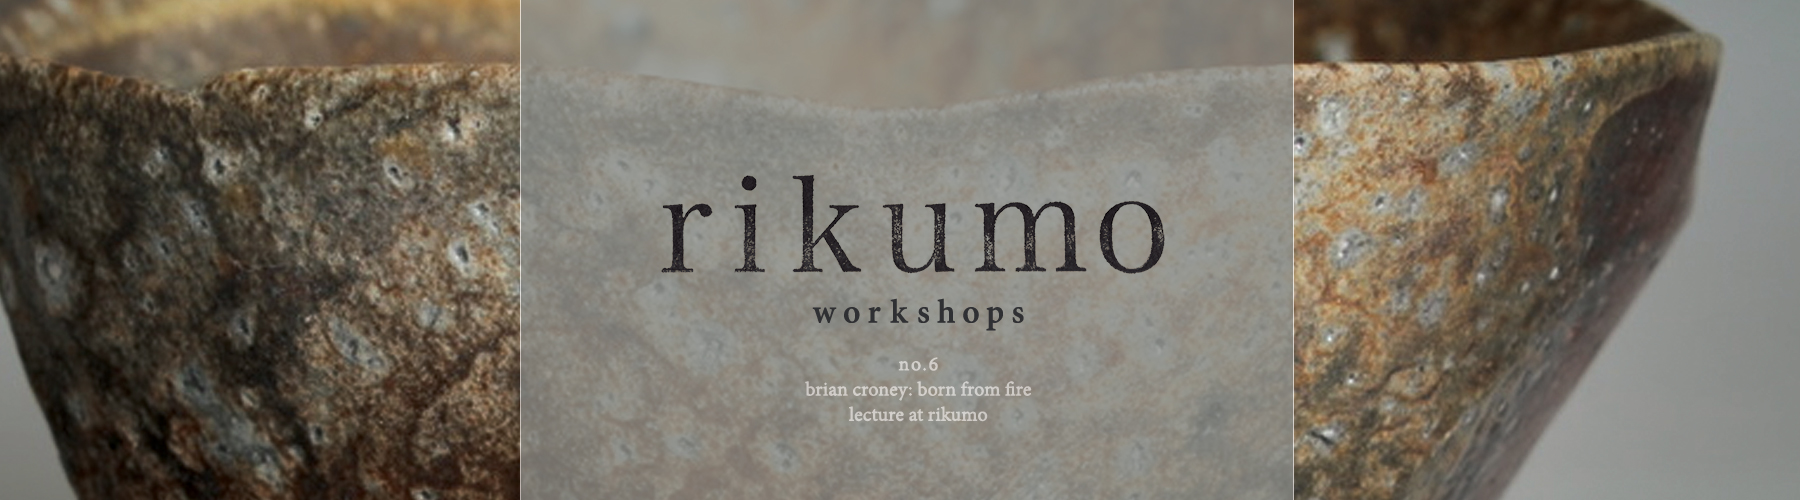 rikumo workshop brian croney